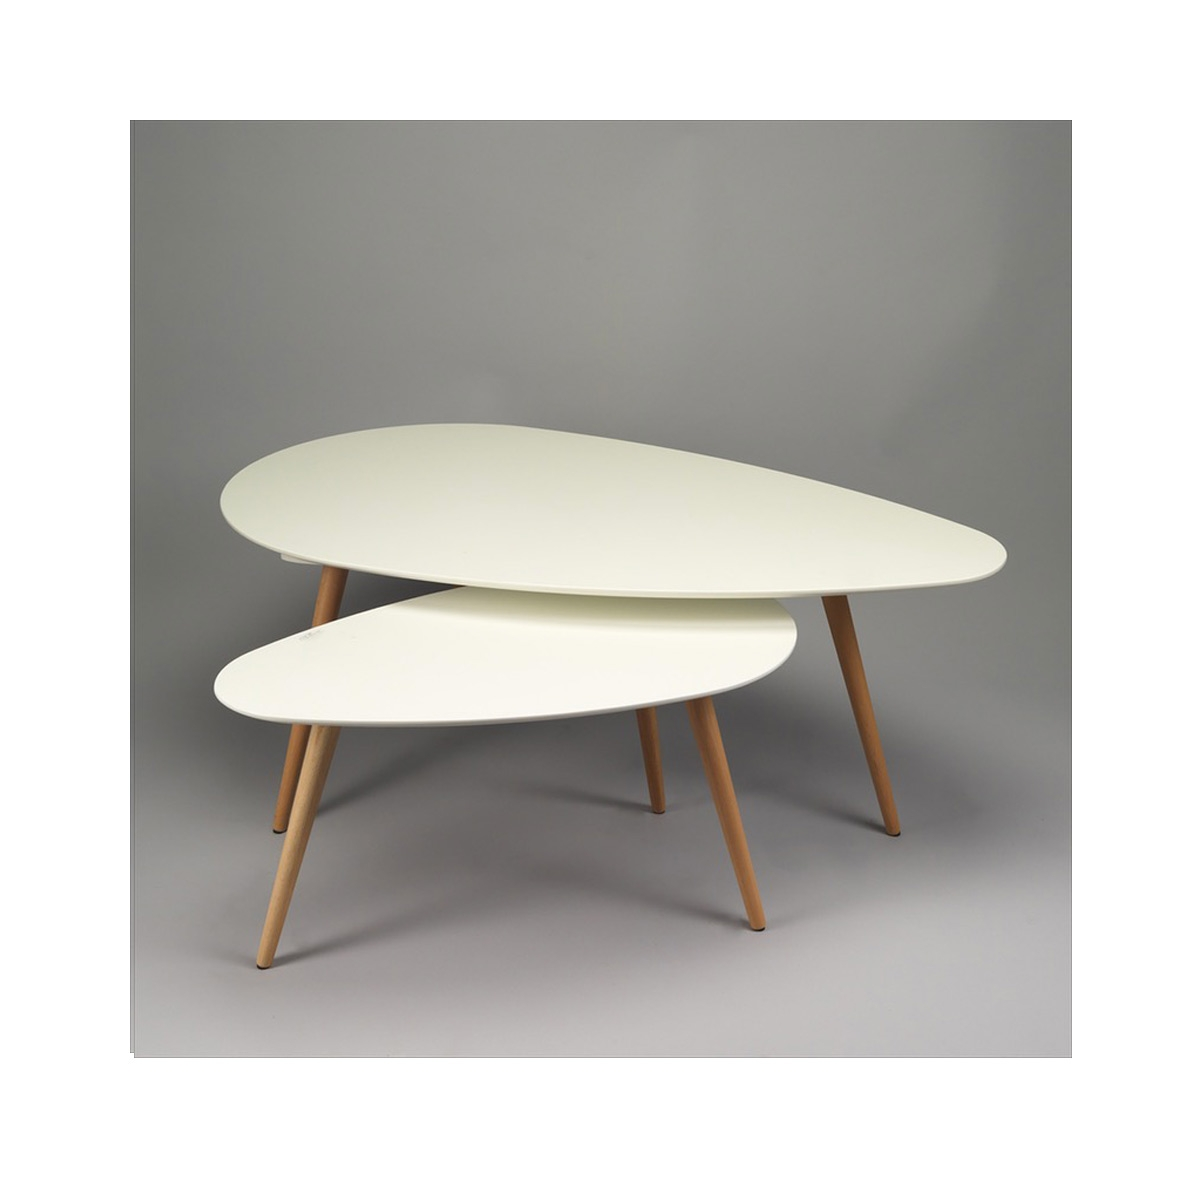 Prix des table gigogne - Table basse italienne design ...